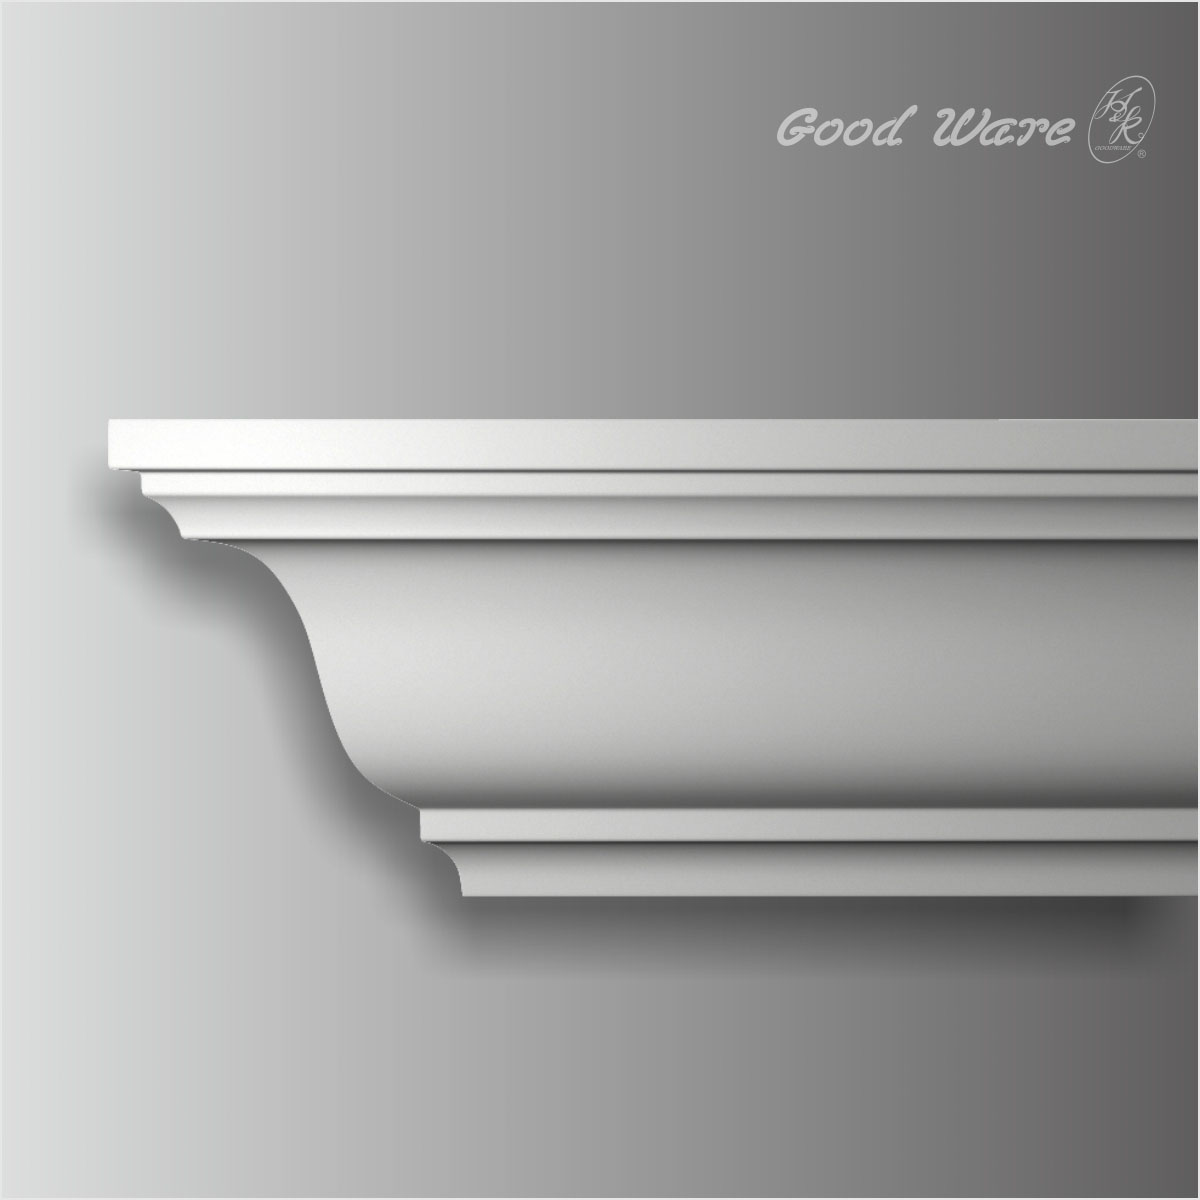 Polyurethane smooth 8 inch crown moulding